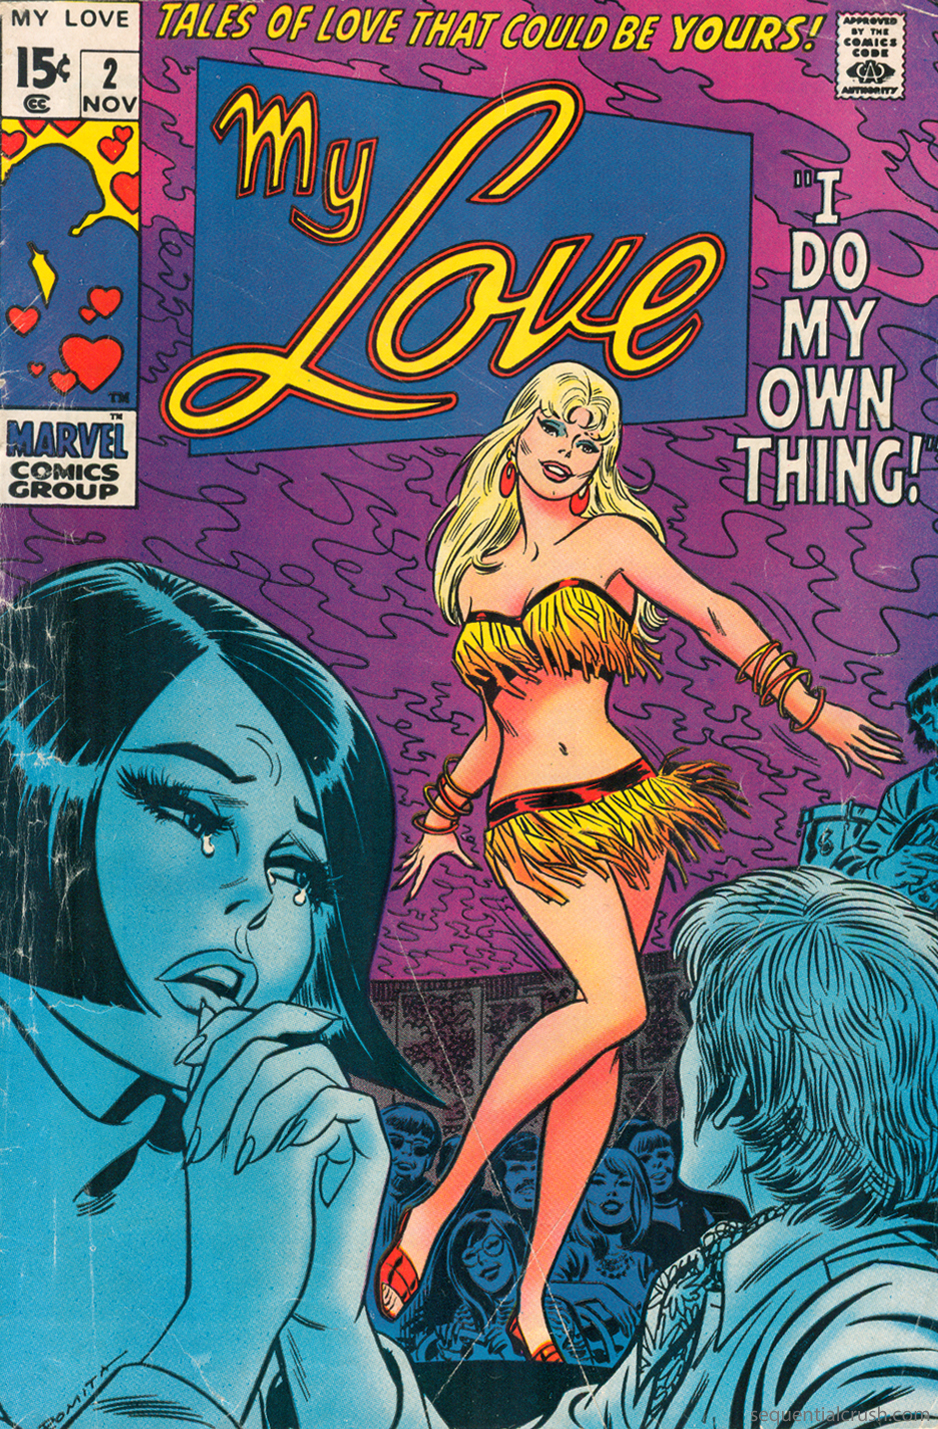 My Love  #2 (November 1969) Pencils and Inks: John Romita